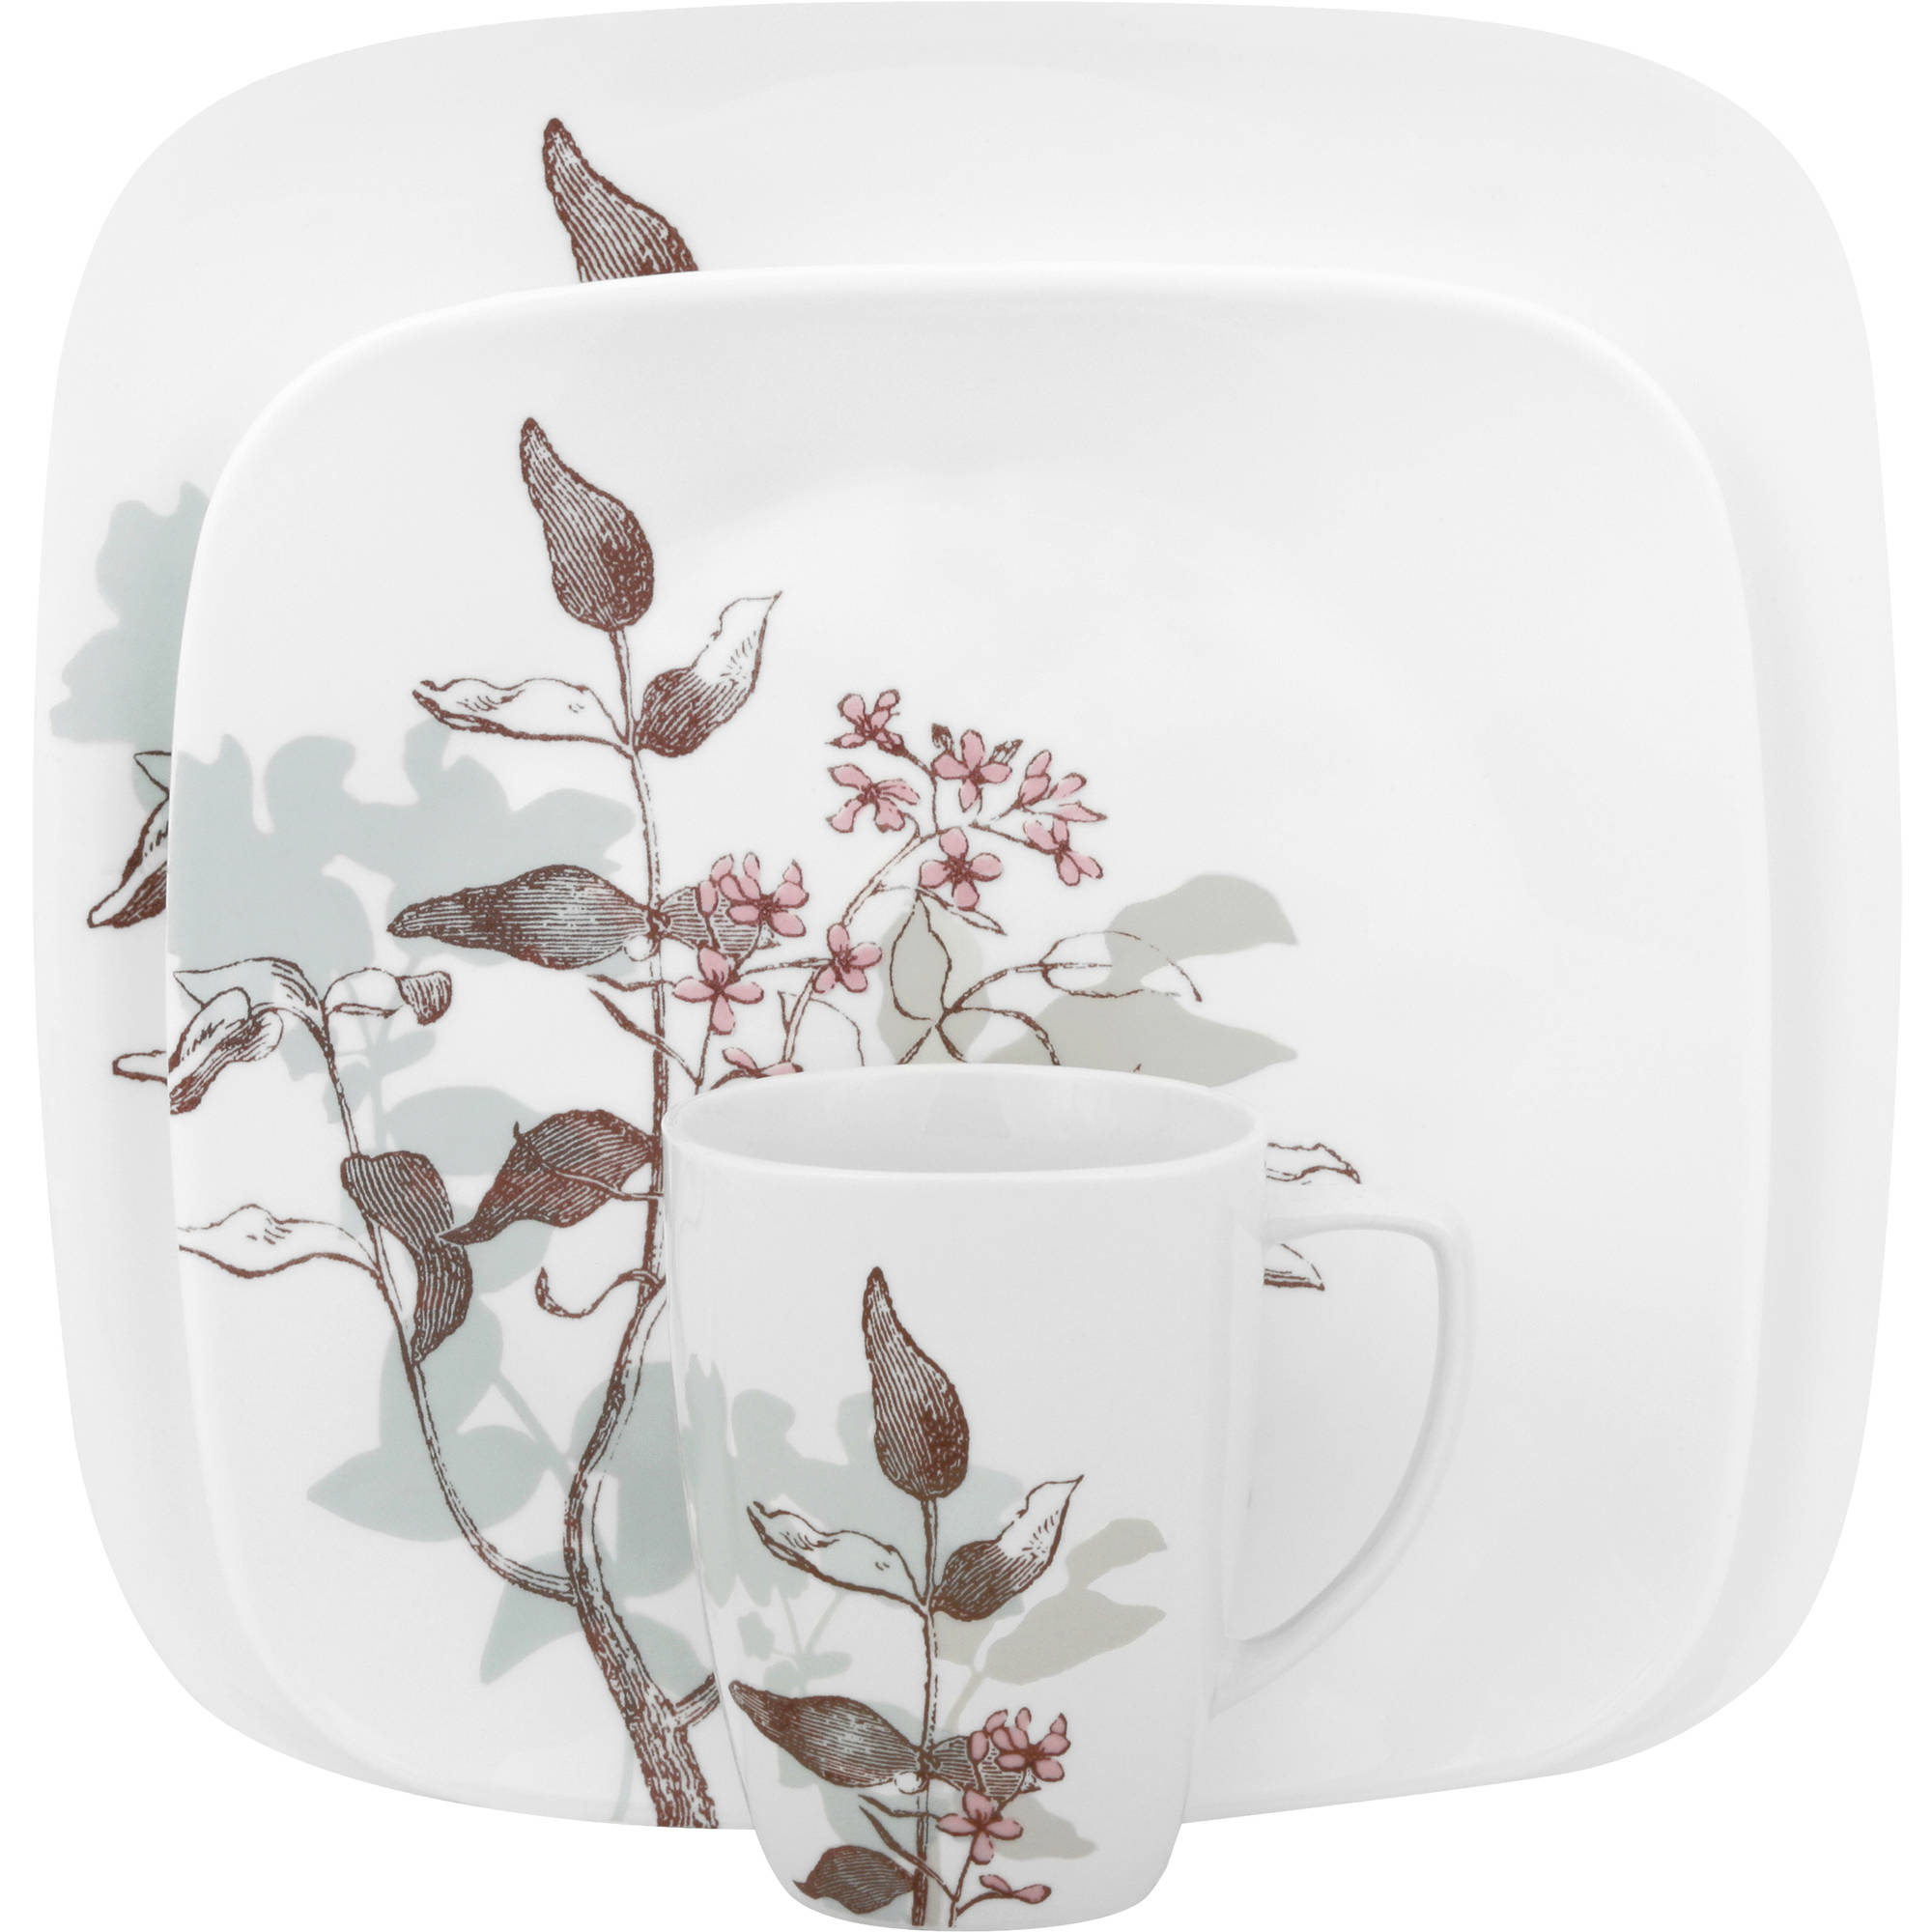 Corelle Squares Happy Days 16-Piece Dinnerware Set - Walmart.com